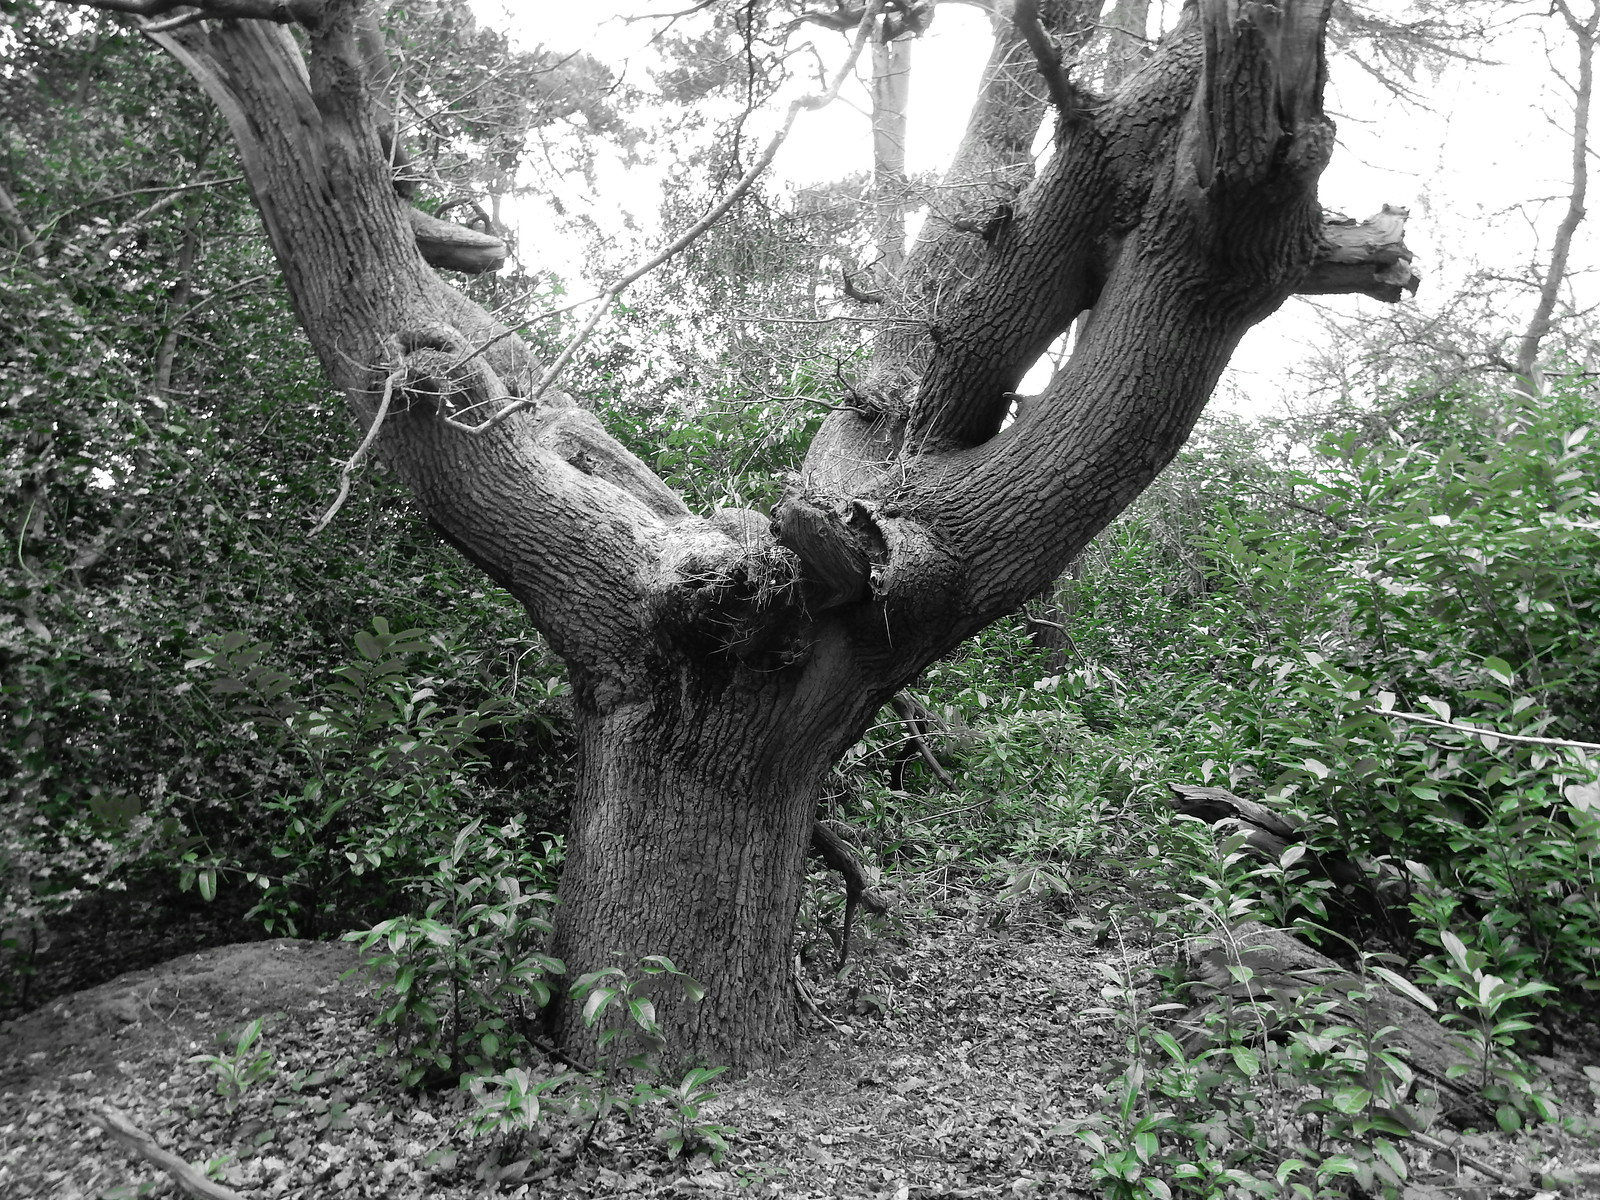 Big tree Gomshall to Guildford